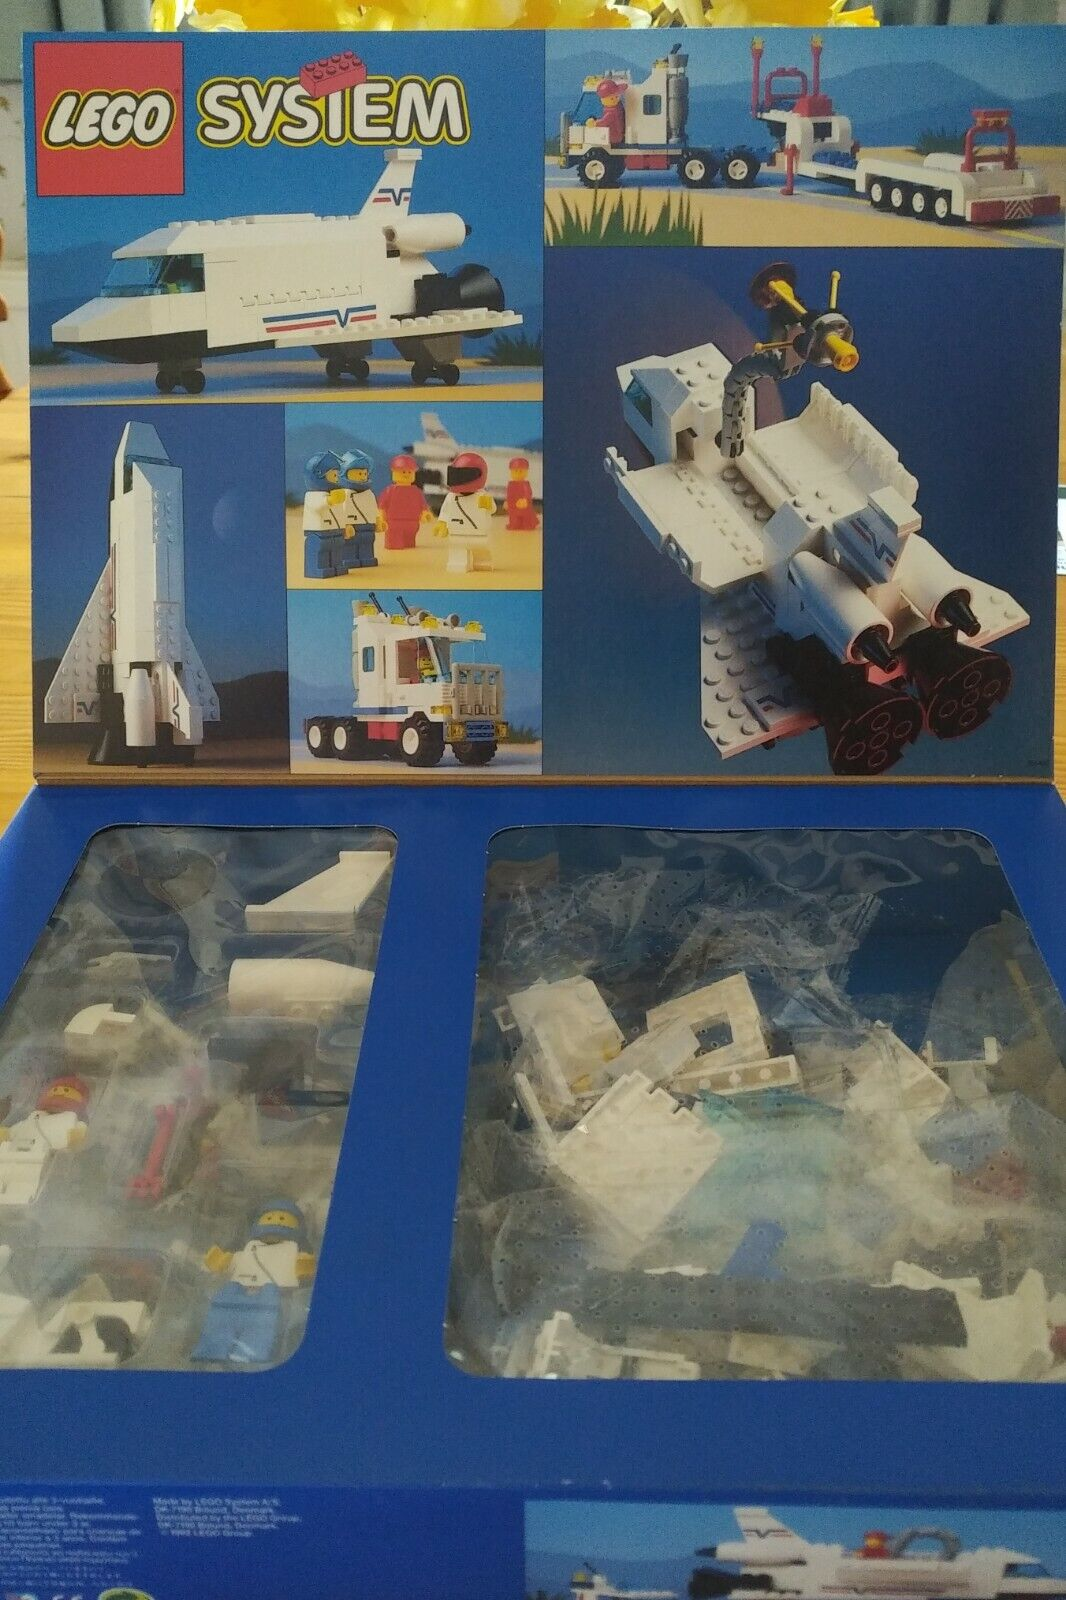 Lego 6346 Space shuttle NEW BOXED ULTRA RARE Shop Condition